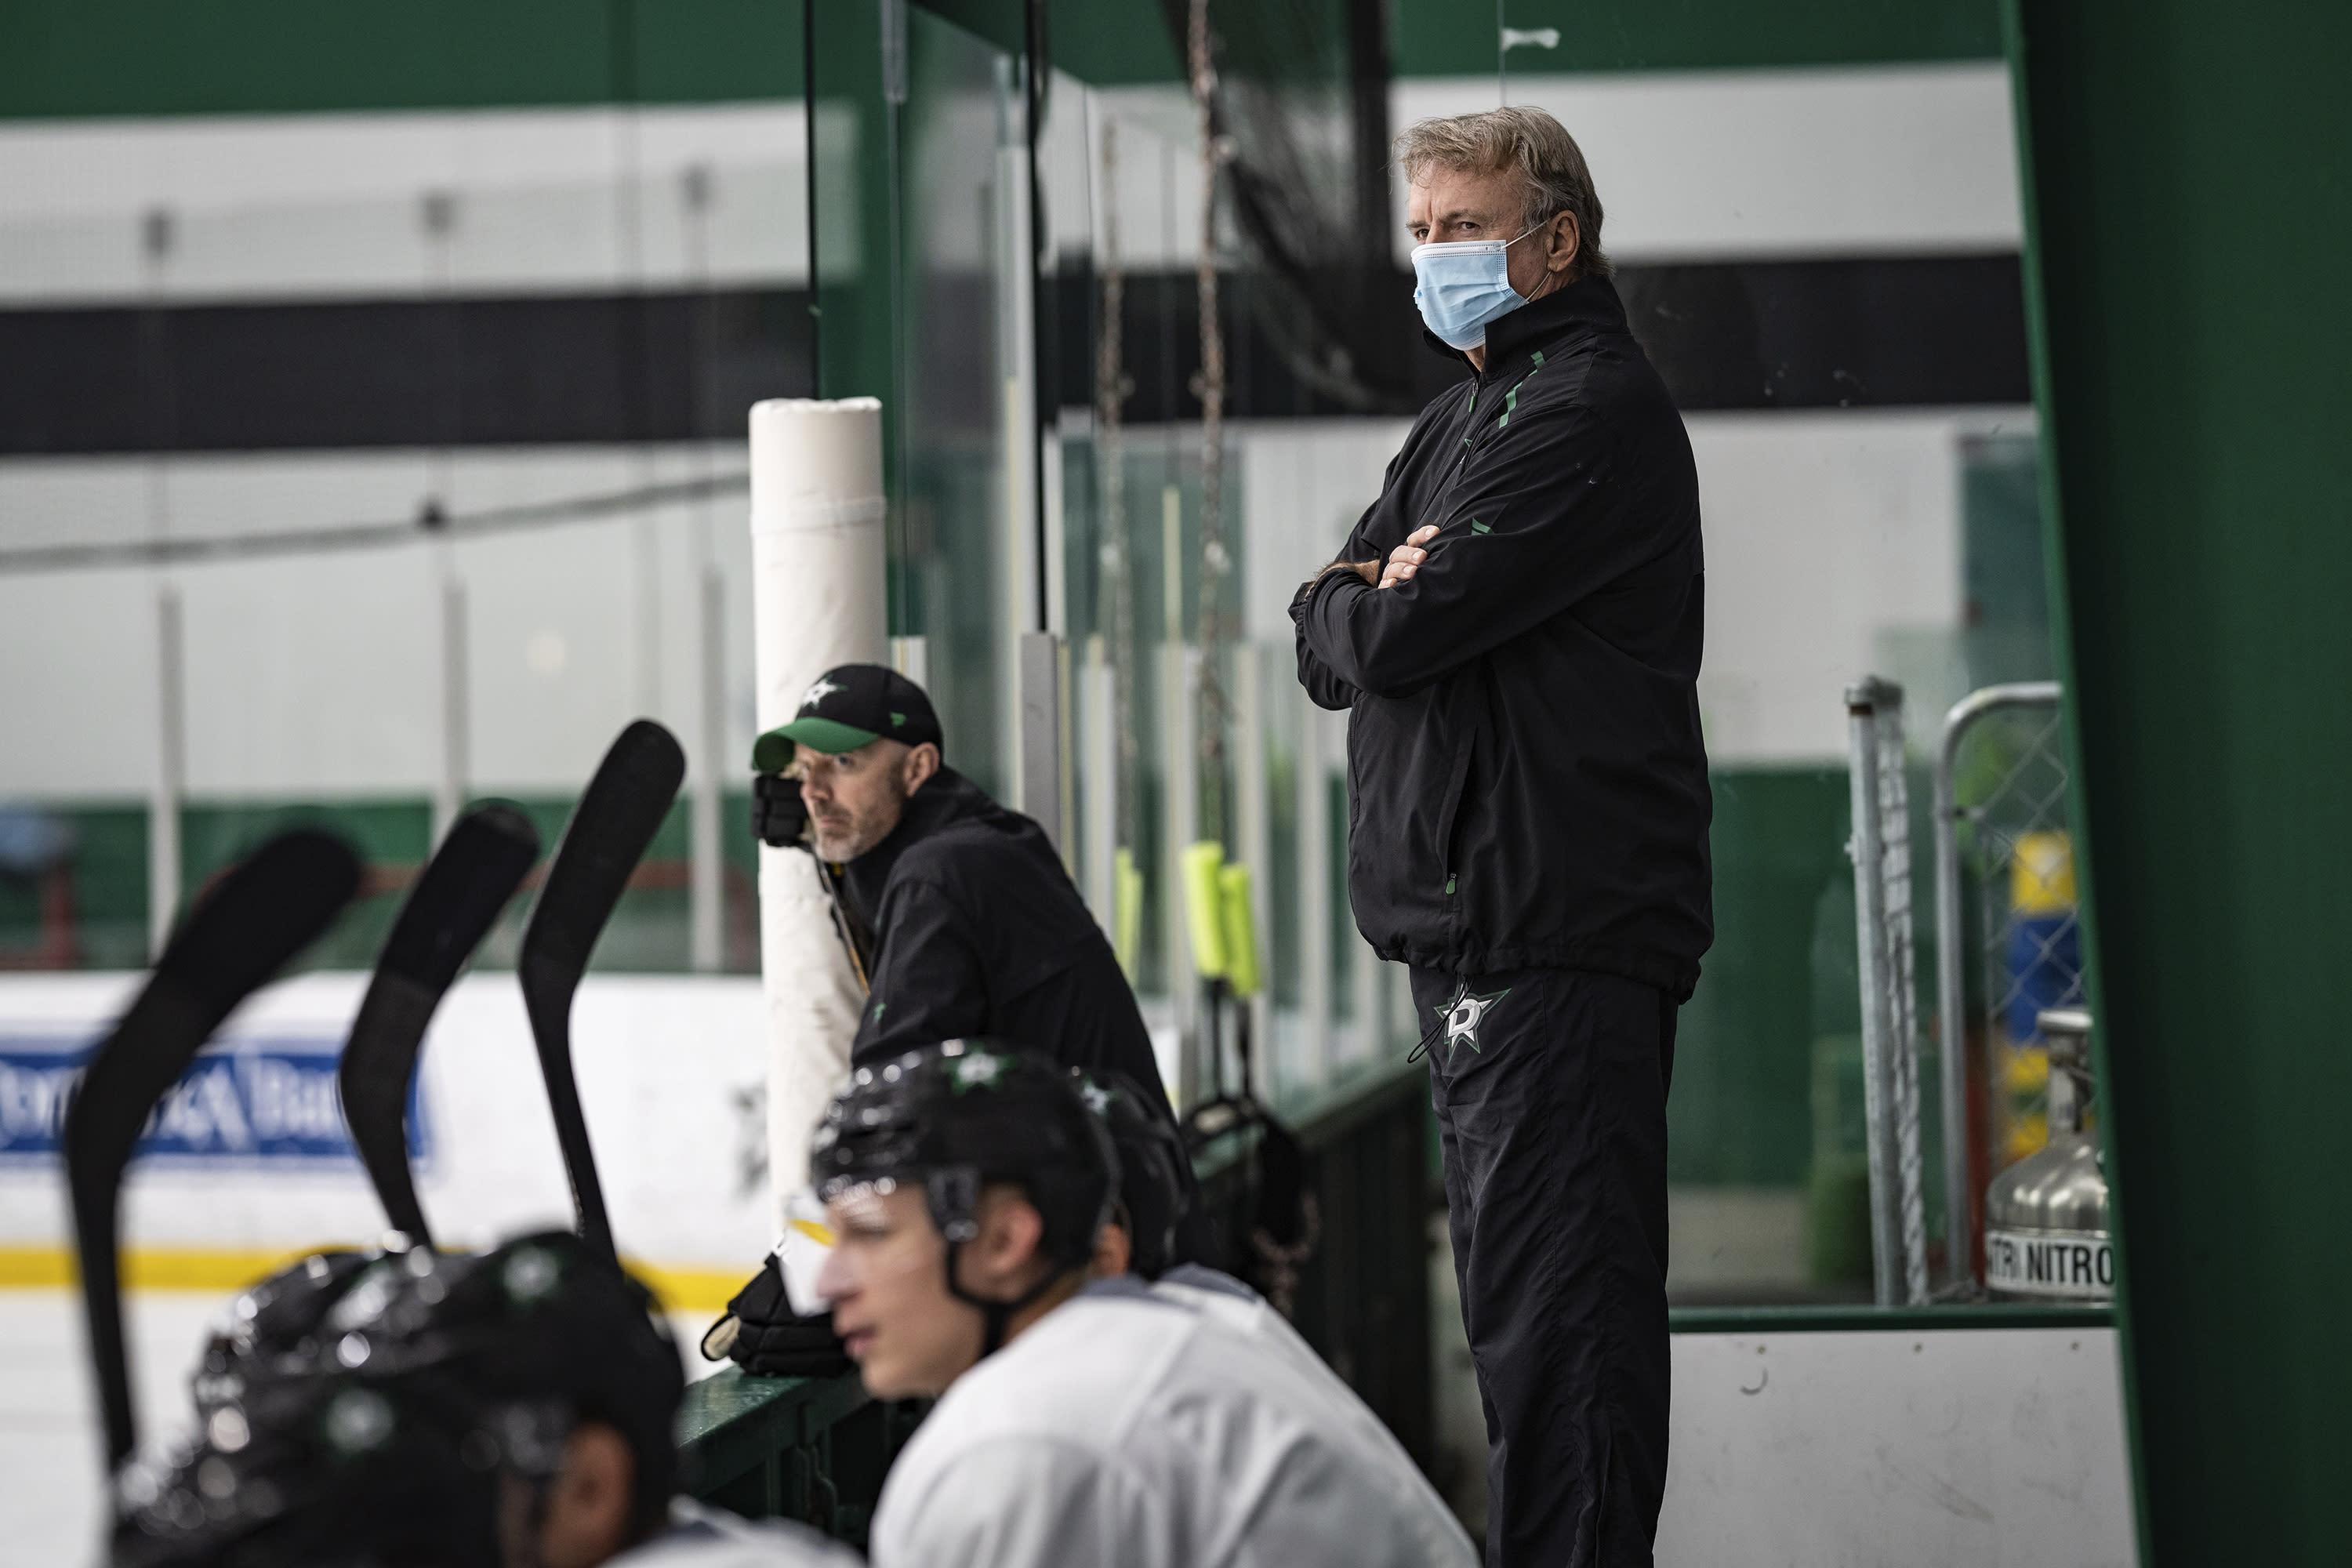 In this photo provided by the Dallas Stars NHL hockey team, interim head coach Rick Bowness watches practice at Comerica Center in Frisco, Texas, Tuesday, July 14, 2020. Bowness, 65, coached from behind the bench the first couple of days of Dallas Stars training camp before lacing up his skates and getting on the ice. Montreal's 60-year-old Claude Julien, Edmonton's 58-year-old Dave Tippett and others are confident in the NHL's protocols as older, more at-risk people during the COVID-19 pandemic. Only one coach, Florida's 63-year-old assistant Mike Kitchen, has opted out of hockey's return. (Jeff Toates/Dallas Stars via AP)